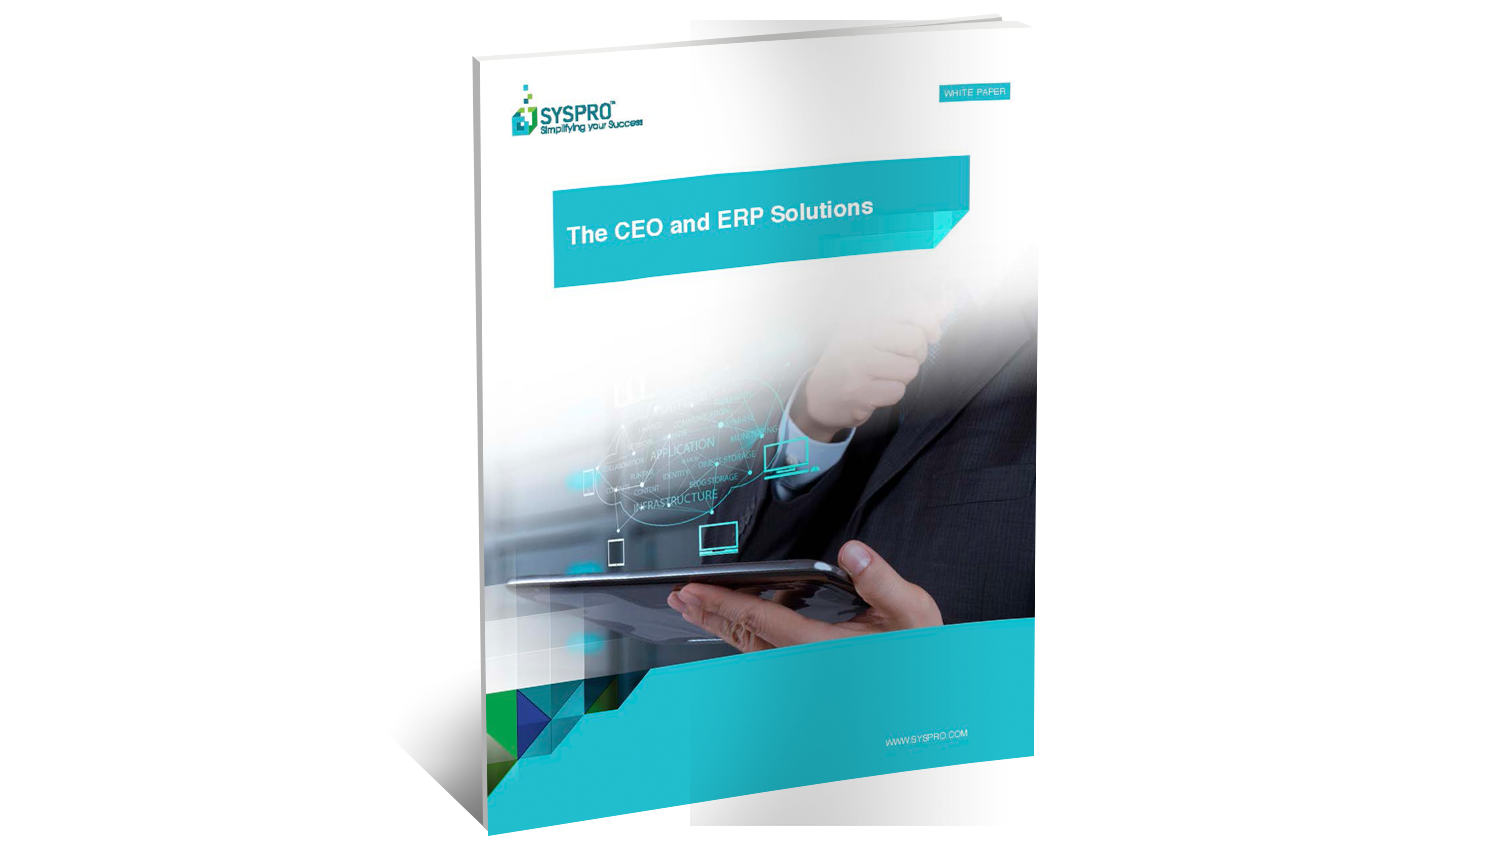 SYSPRO ERP for CEOs White Paper